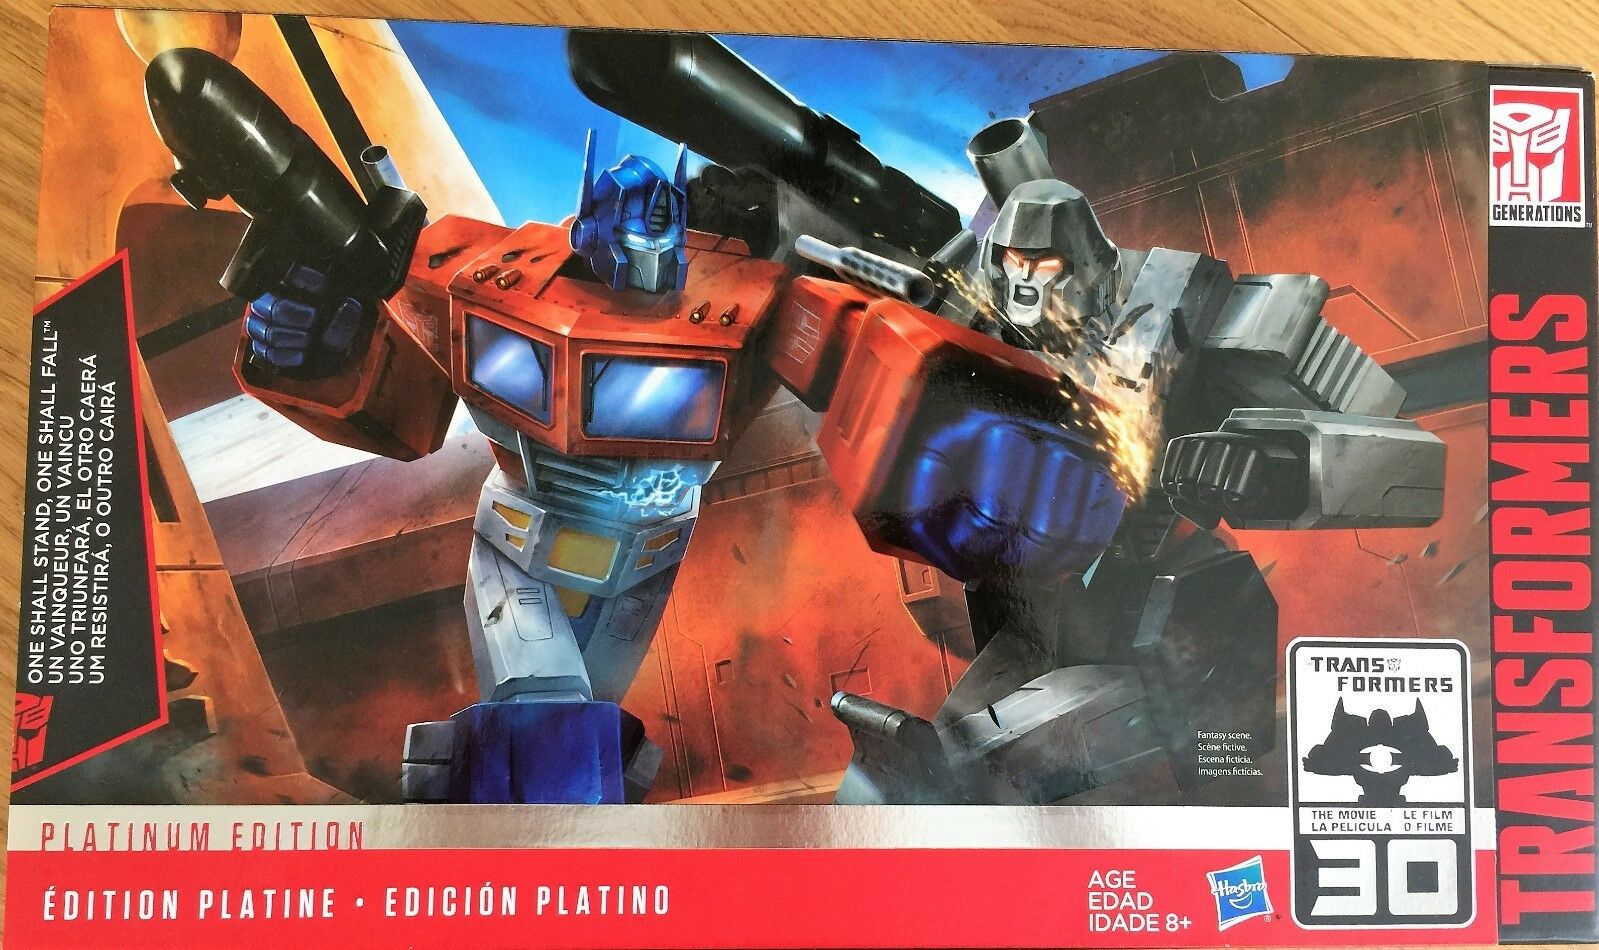 PLATINUM EDITION Transformers ONE SHALL STAND ONE SHALL FALL Hasbro Generations